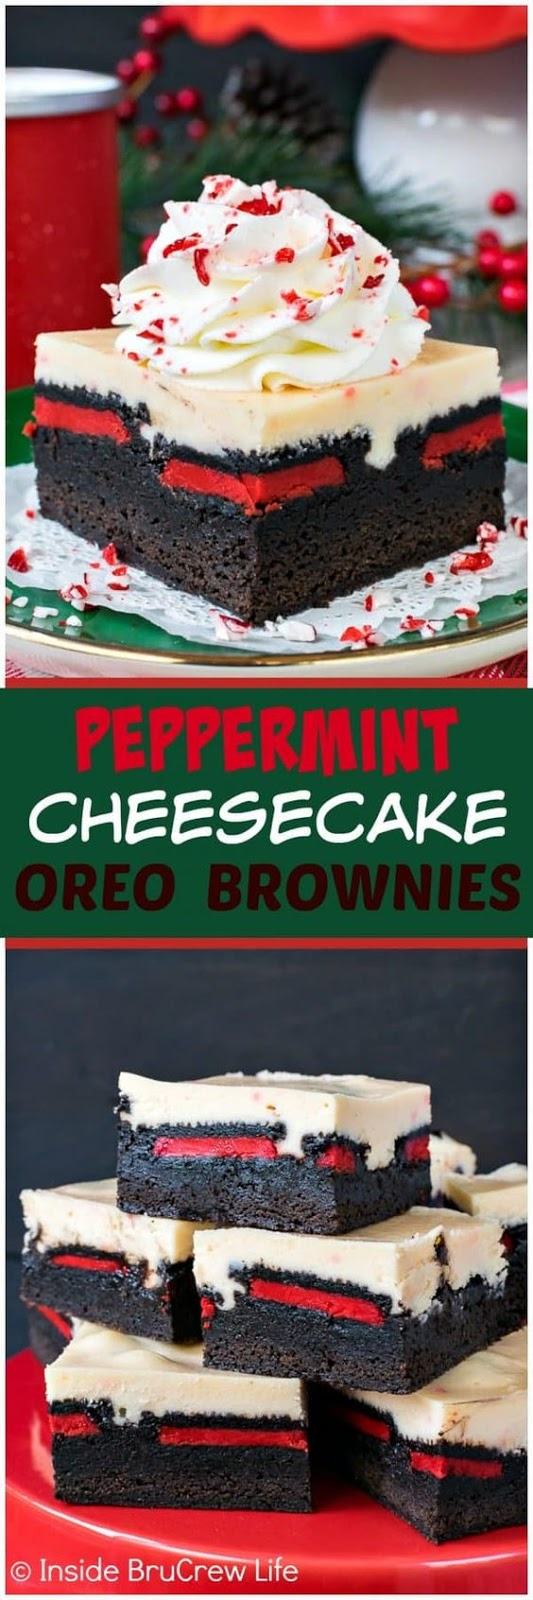 PEPPERMINT CHEESECAKE OREO BROWNIES #Papermint #Cheesecake #Oreacake #Brownies #Browniescake #Bestcake #Favoritecake #deleciouscake